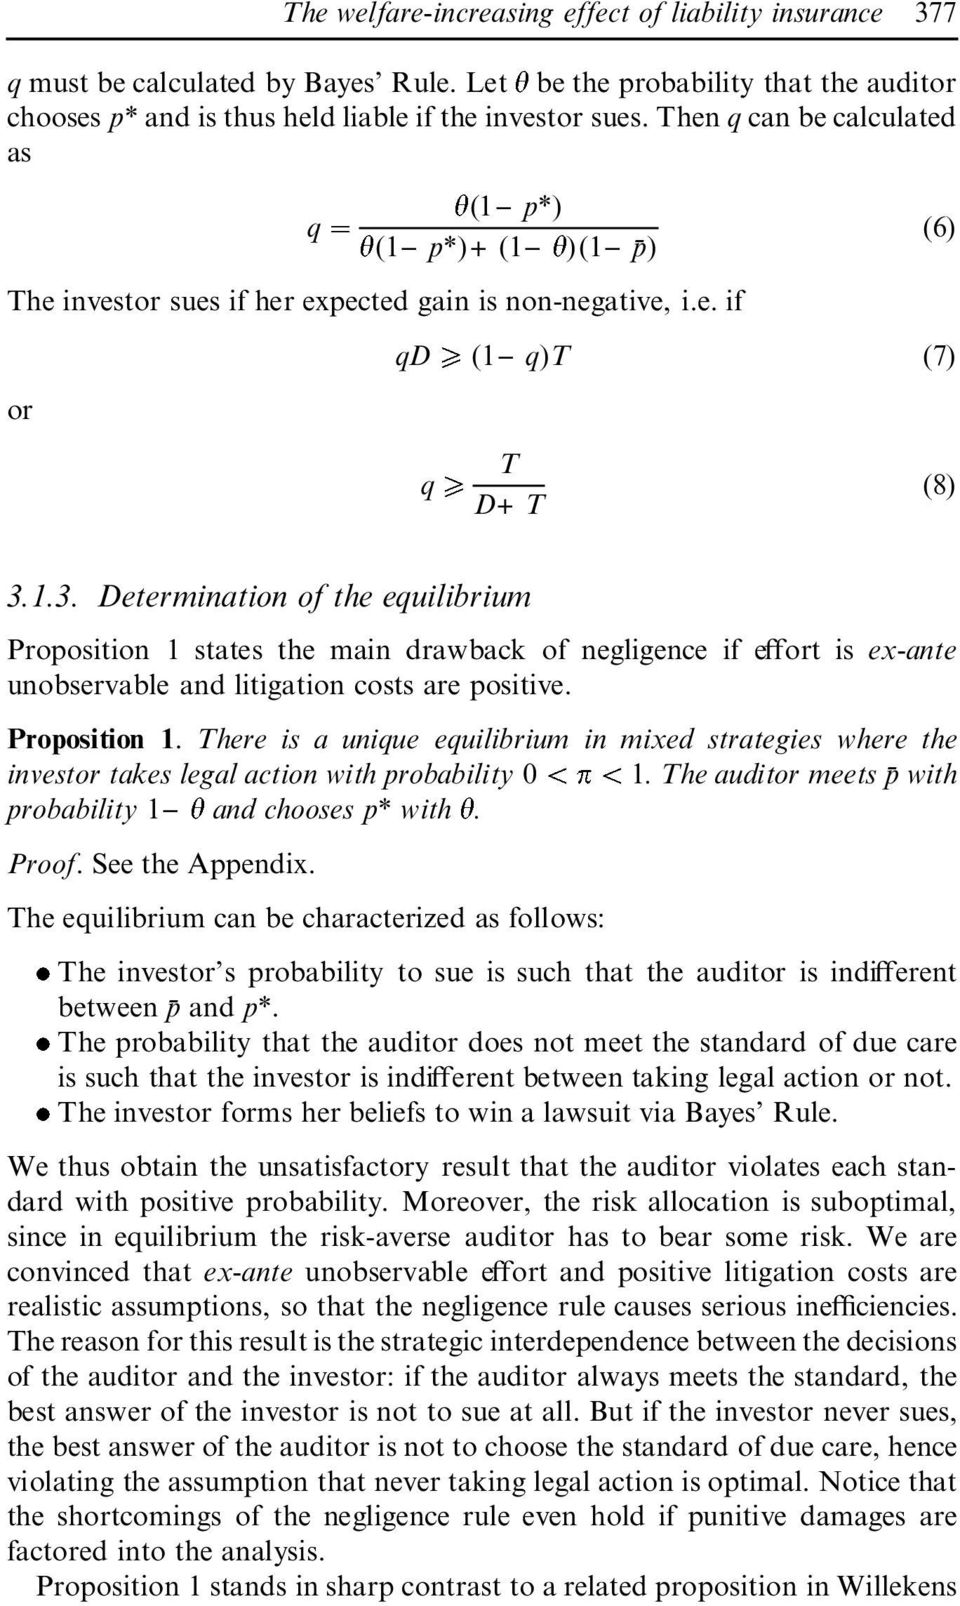 1.3. Determination of the equilibrium Proposition 1 states the main drawback of negligence if eœort is ex-ante unobservable and litigation costs are positive. Proposition 1. There is a unique equilibrium in mixed strategies where the investor takes legal action with probability 0 1.